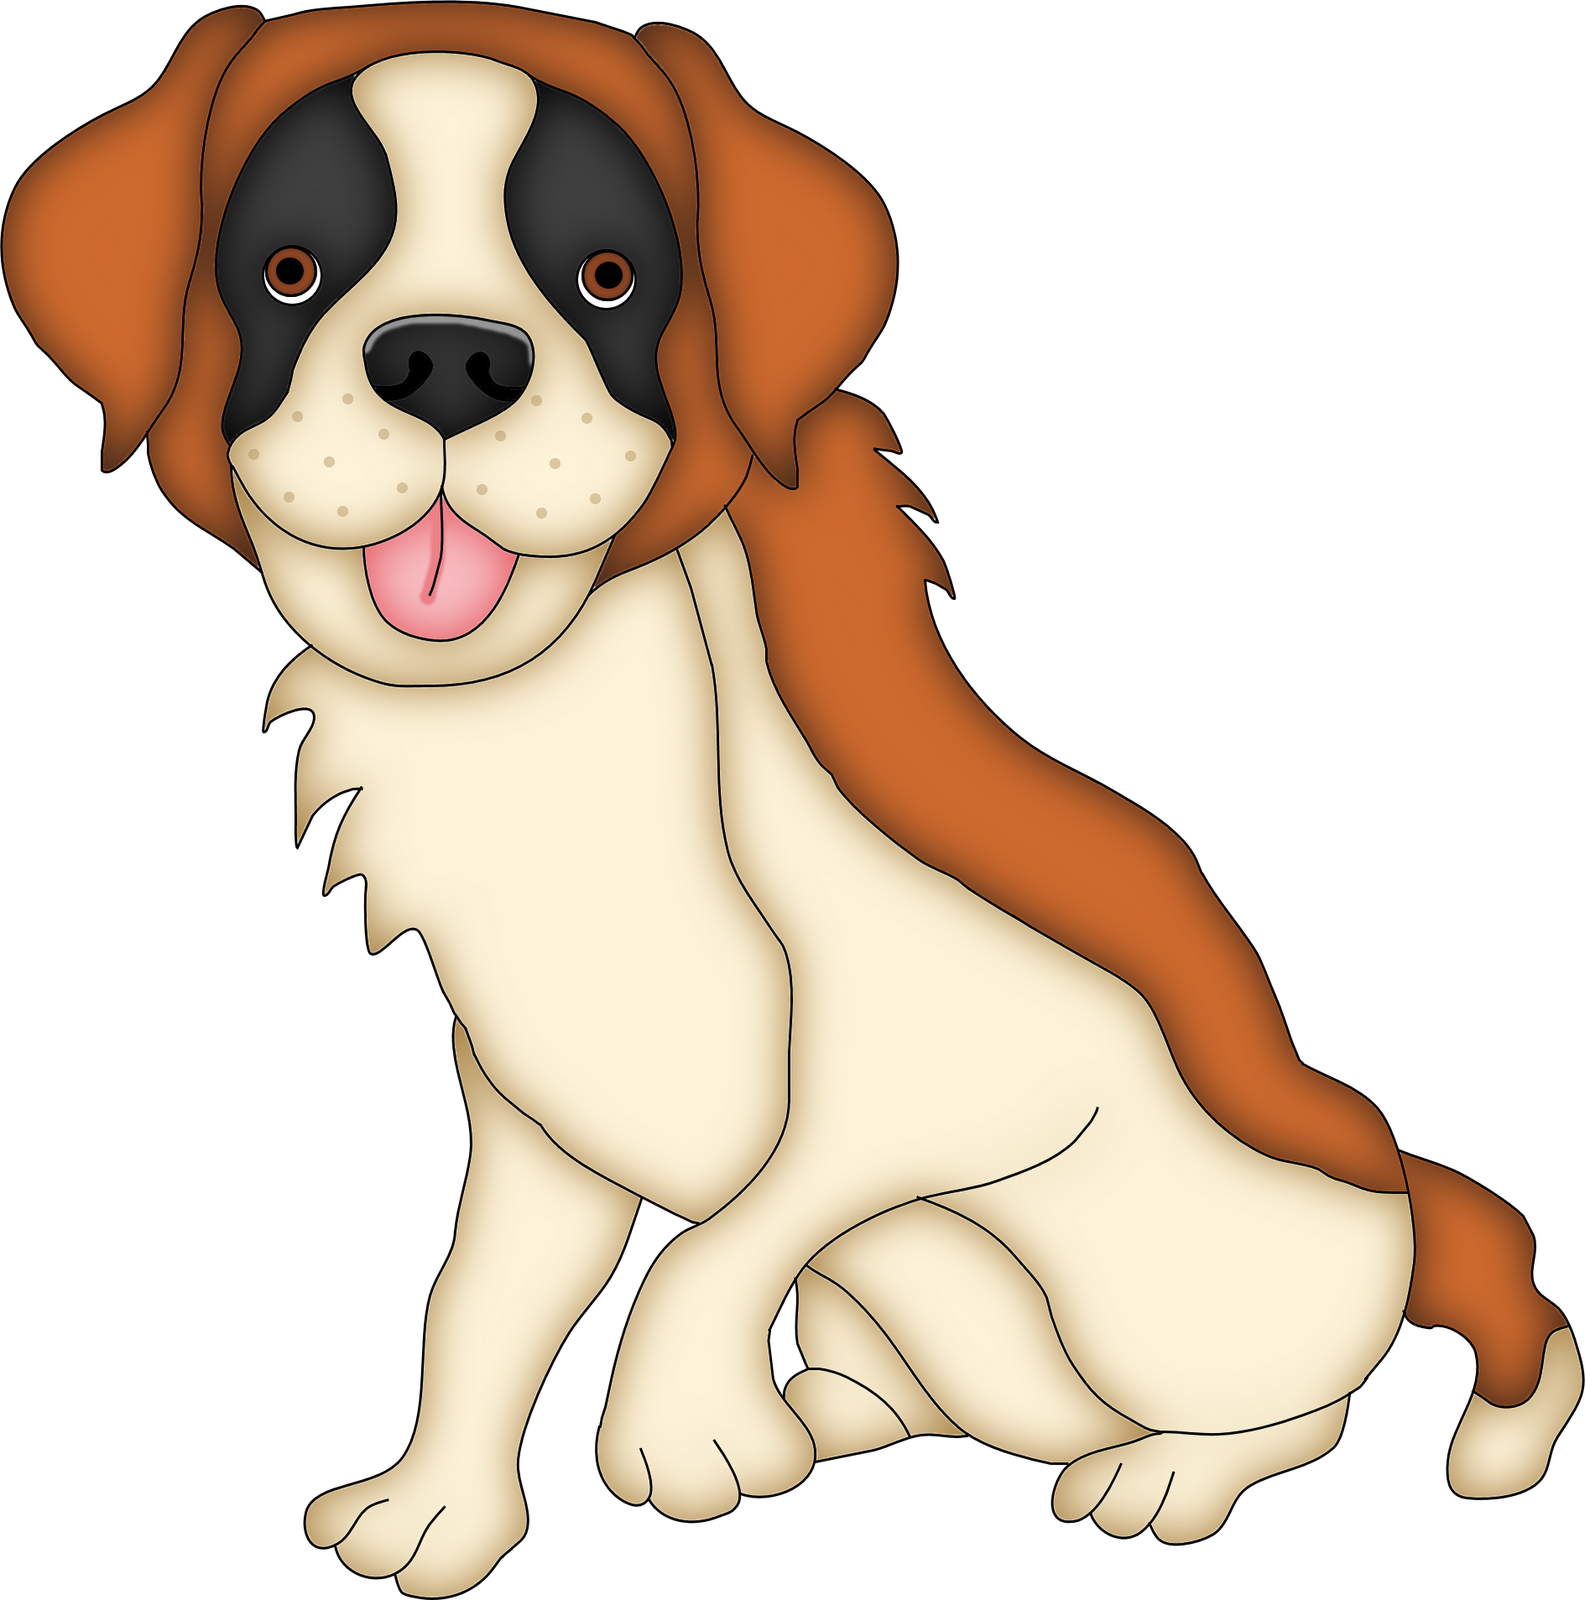 Use My New 80s Clipart And St Bernard Clip Art Feel Free To Request